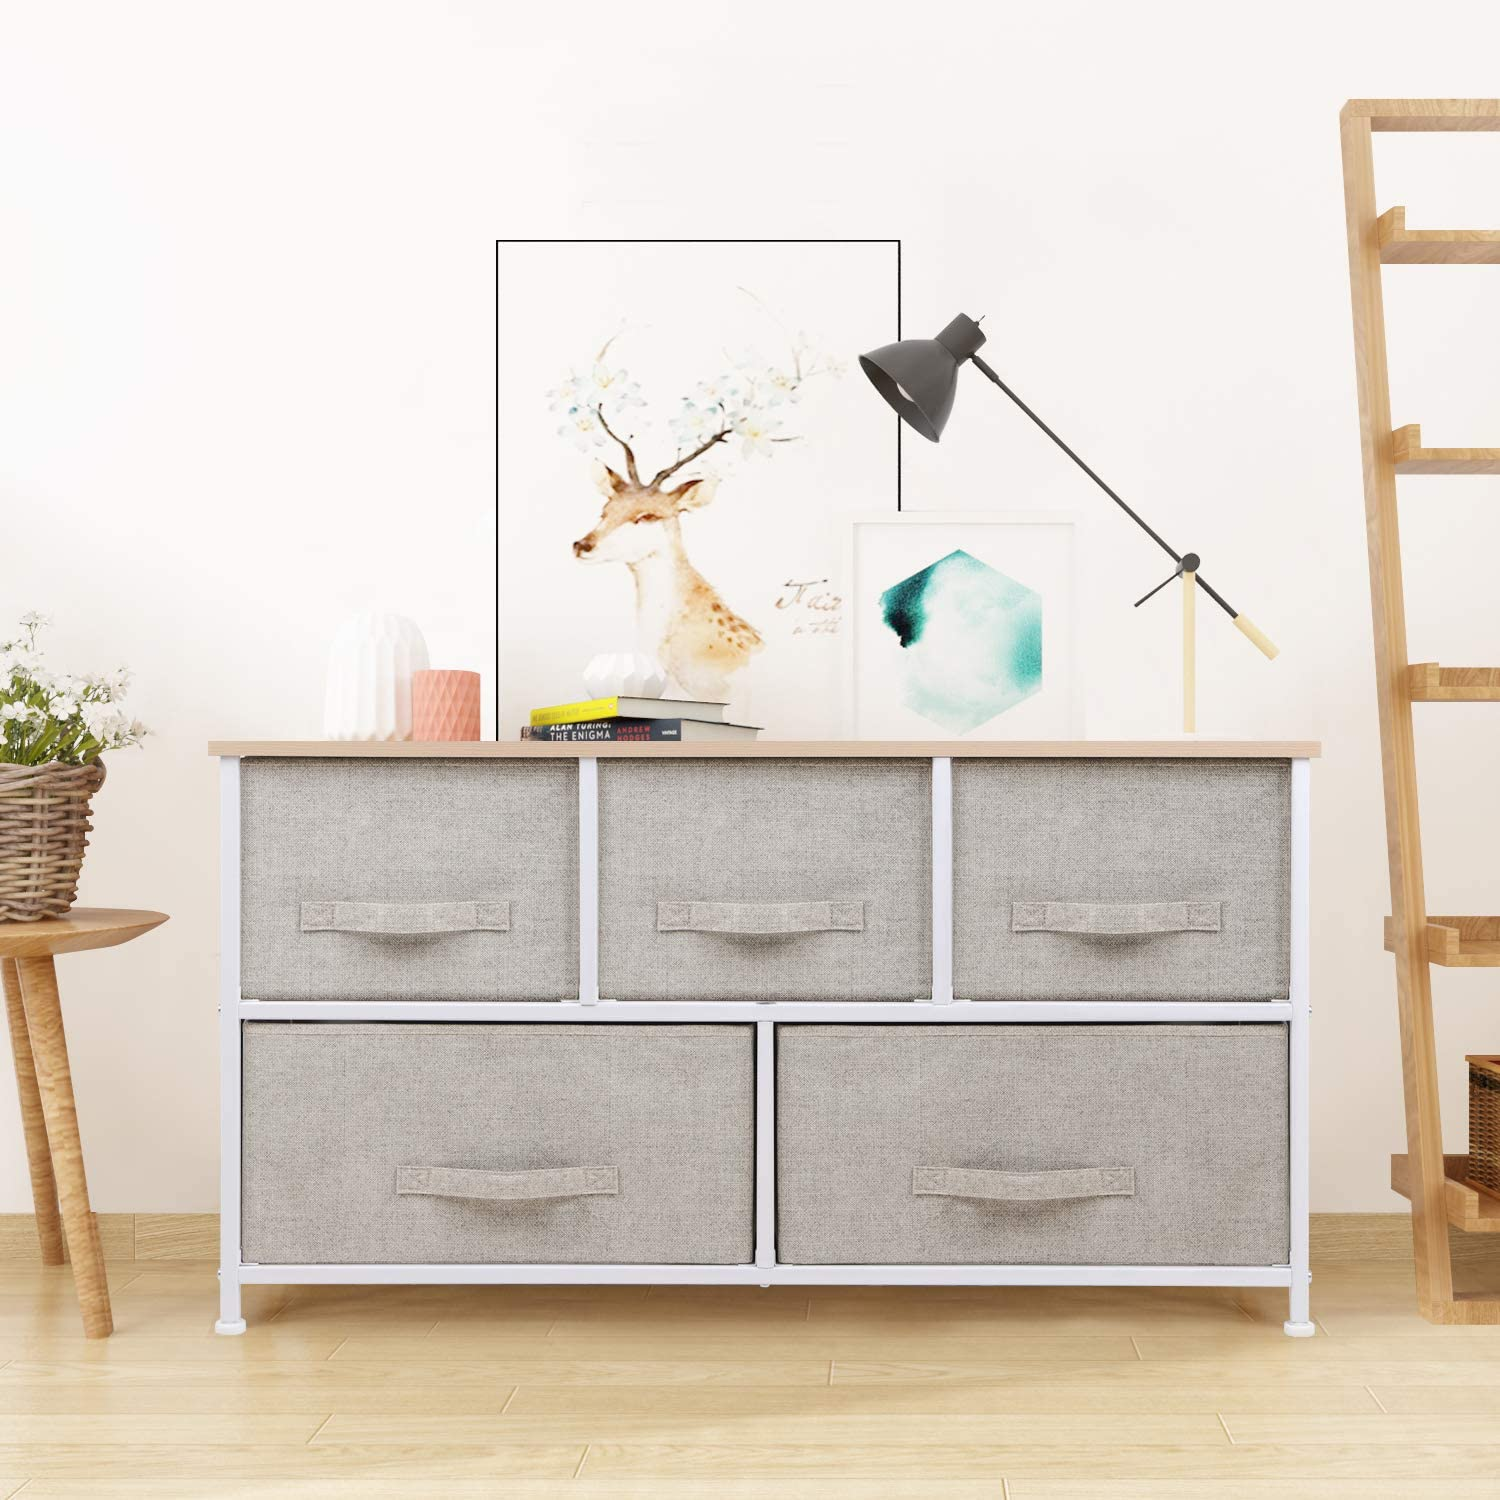 Unit Storage Cabinet Storage Chest for Bedroom,Living room jeffordoutlet Beige Chest of Drawers Non-Woven Fabric Closet Cloth Organizer Basket